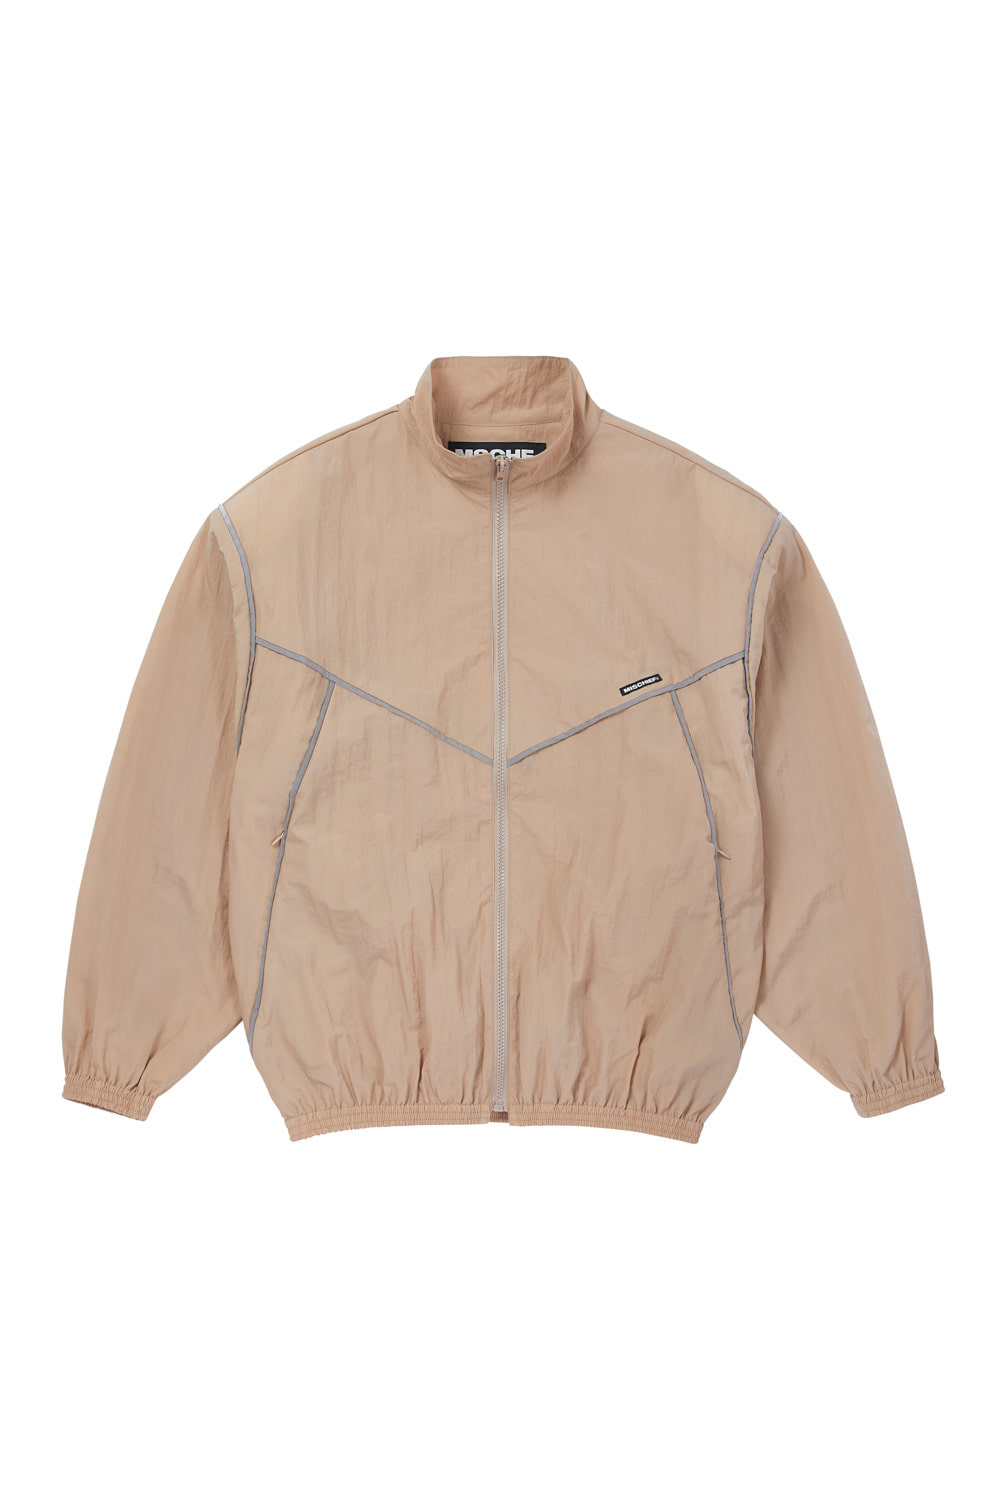 SINCE 2010 WINDBREAKER_beige